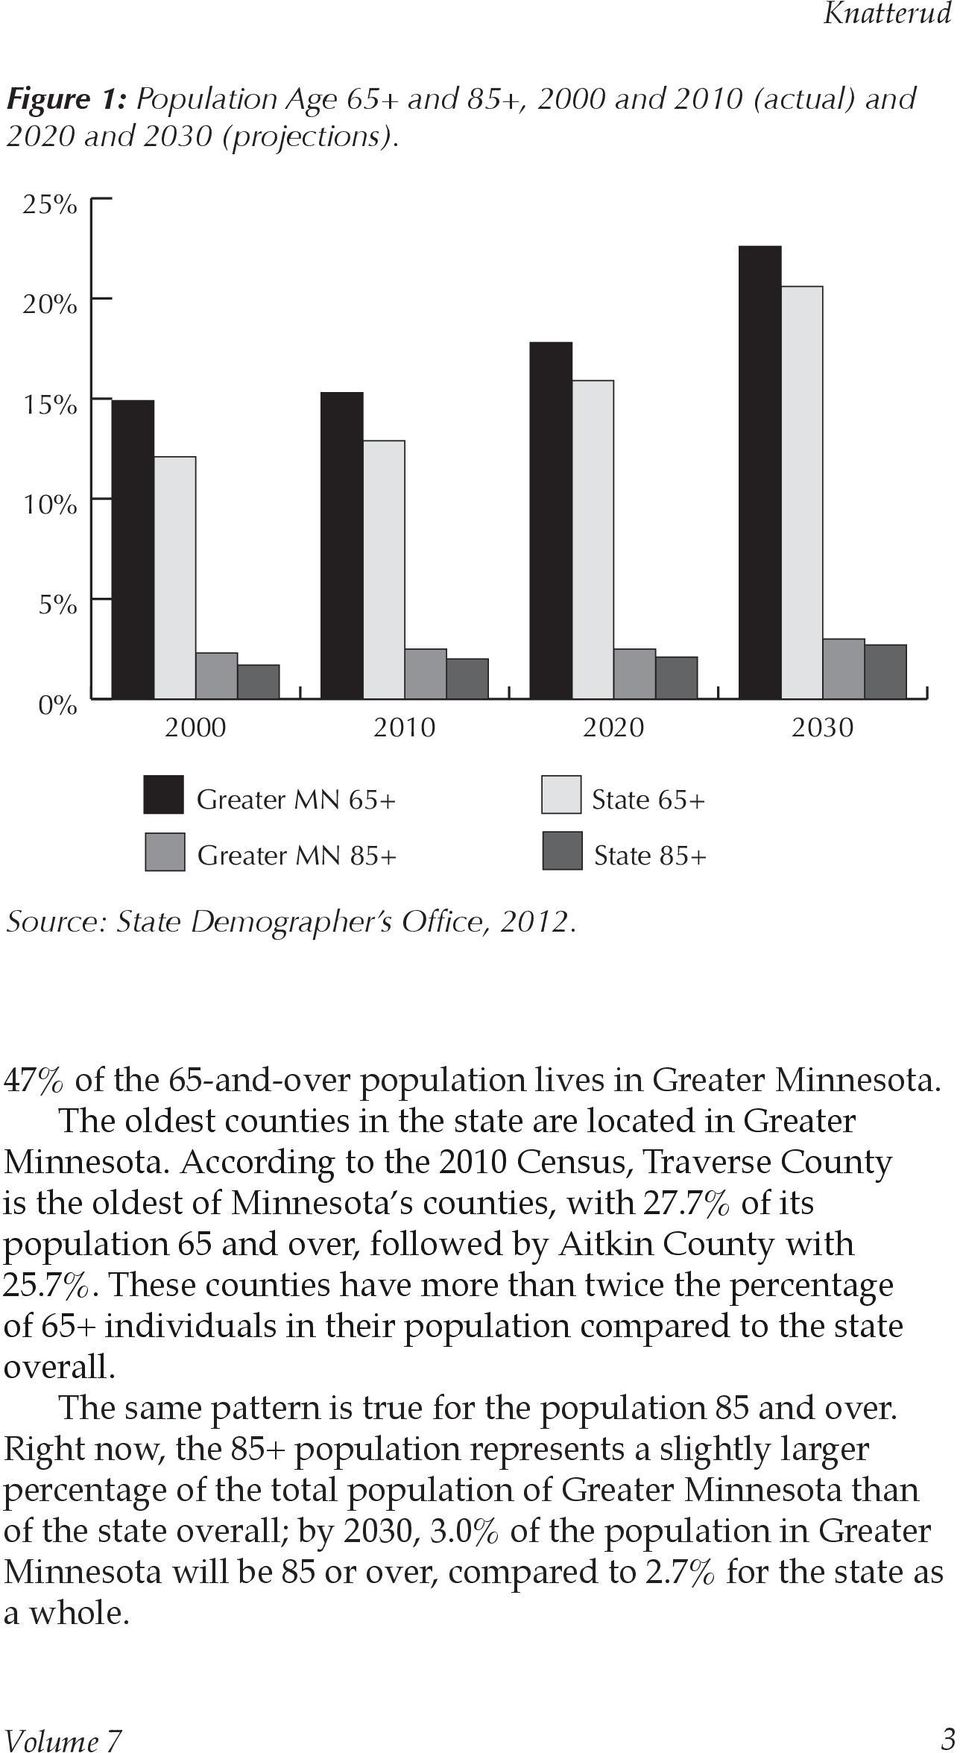 The oldest counties in the state are located in Greater Minnesota. According to the 2010 Census, Traverse County is the oldest of Minnesota s counties, with 27.